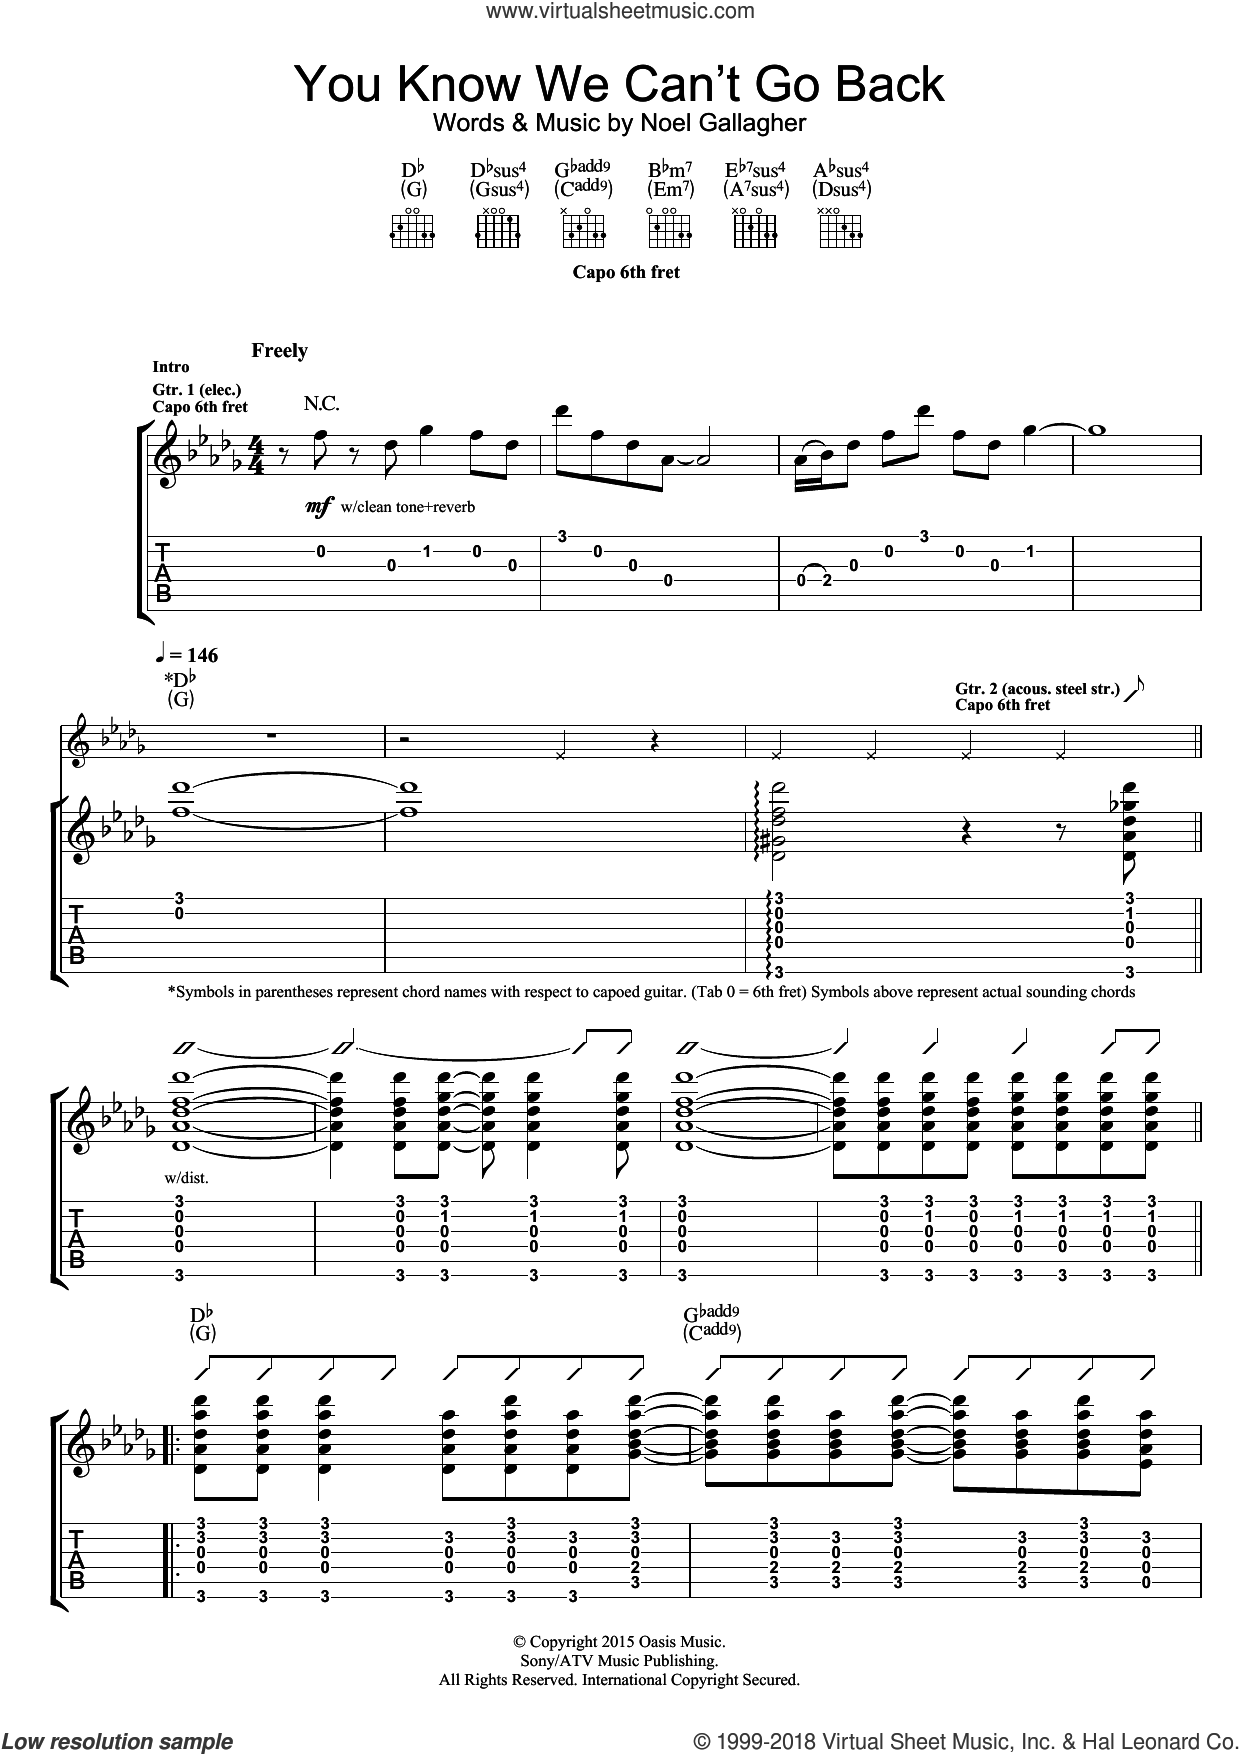 You Know We Can't Go Back sheet music for guitar (tablature) by Noel Gallagher's High Flying Birds and Noel Gallagher. Score Image Preview.